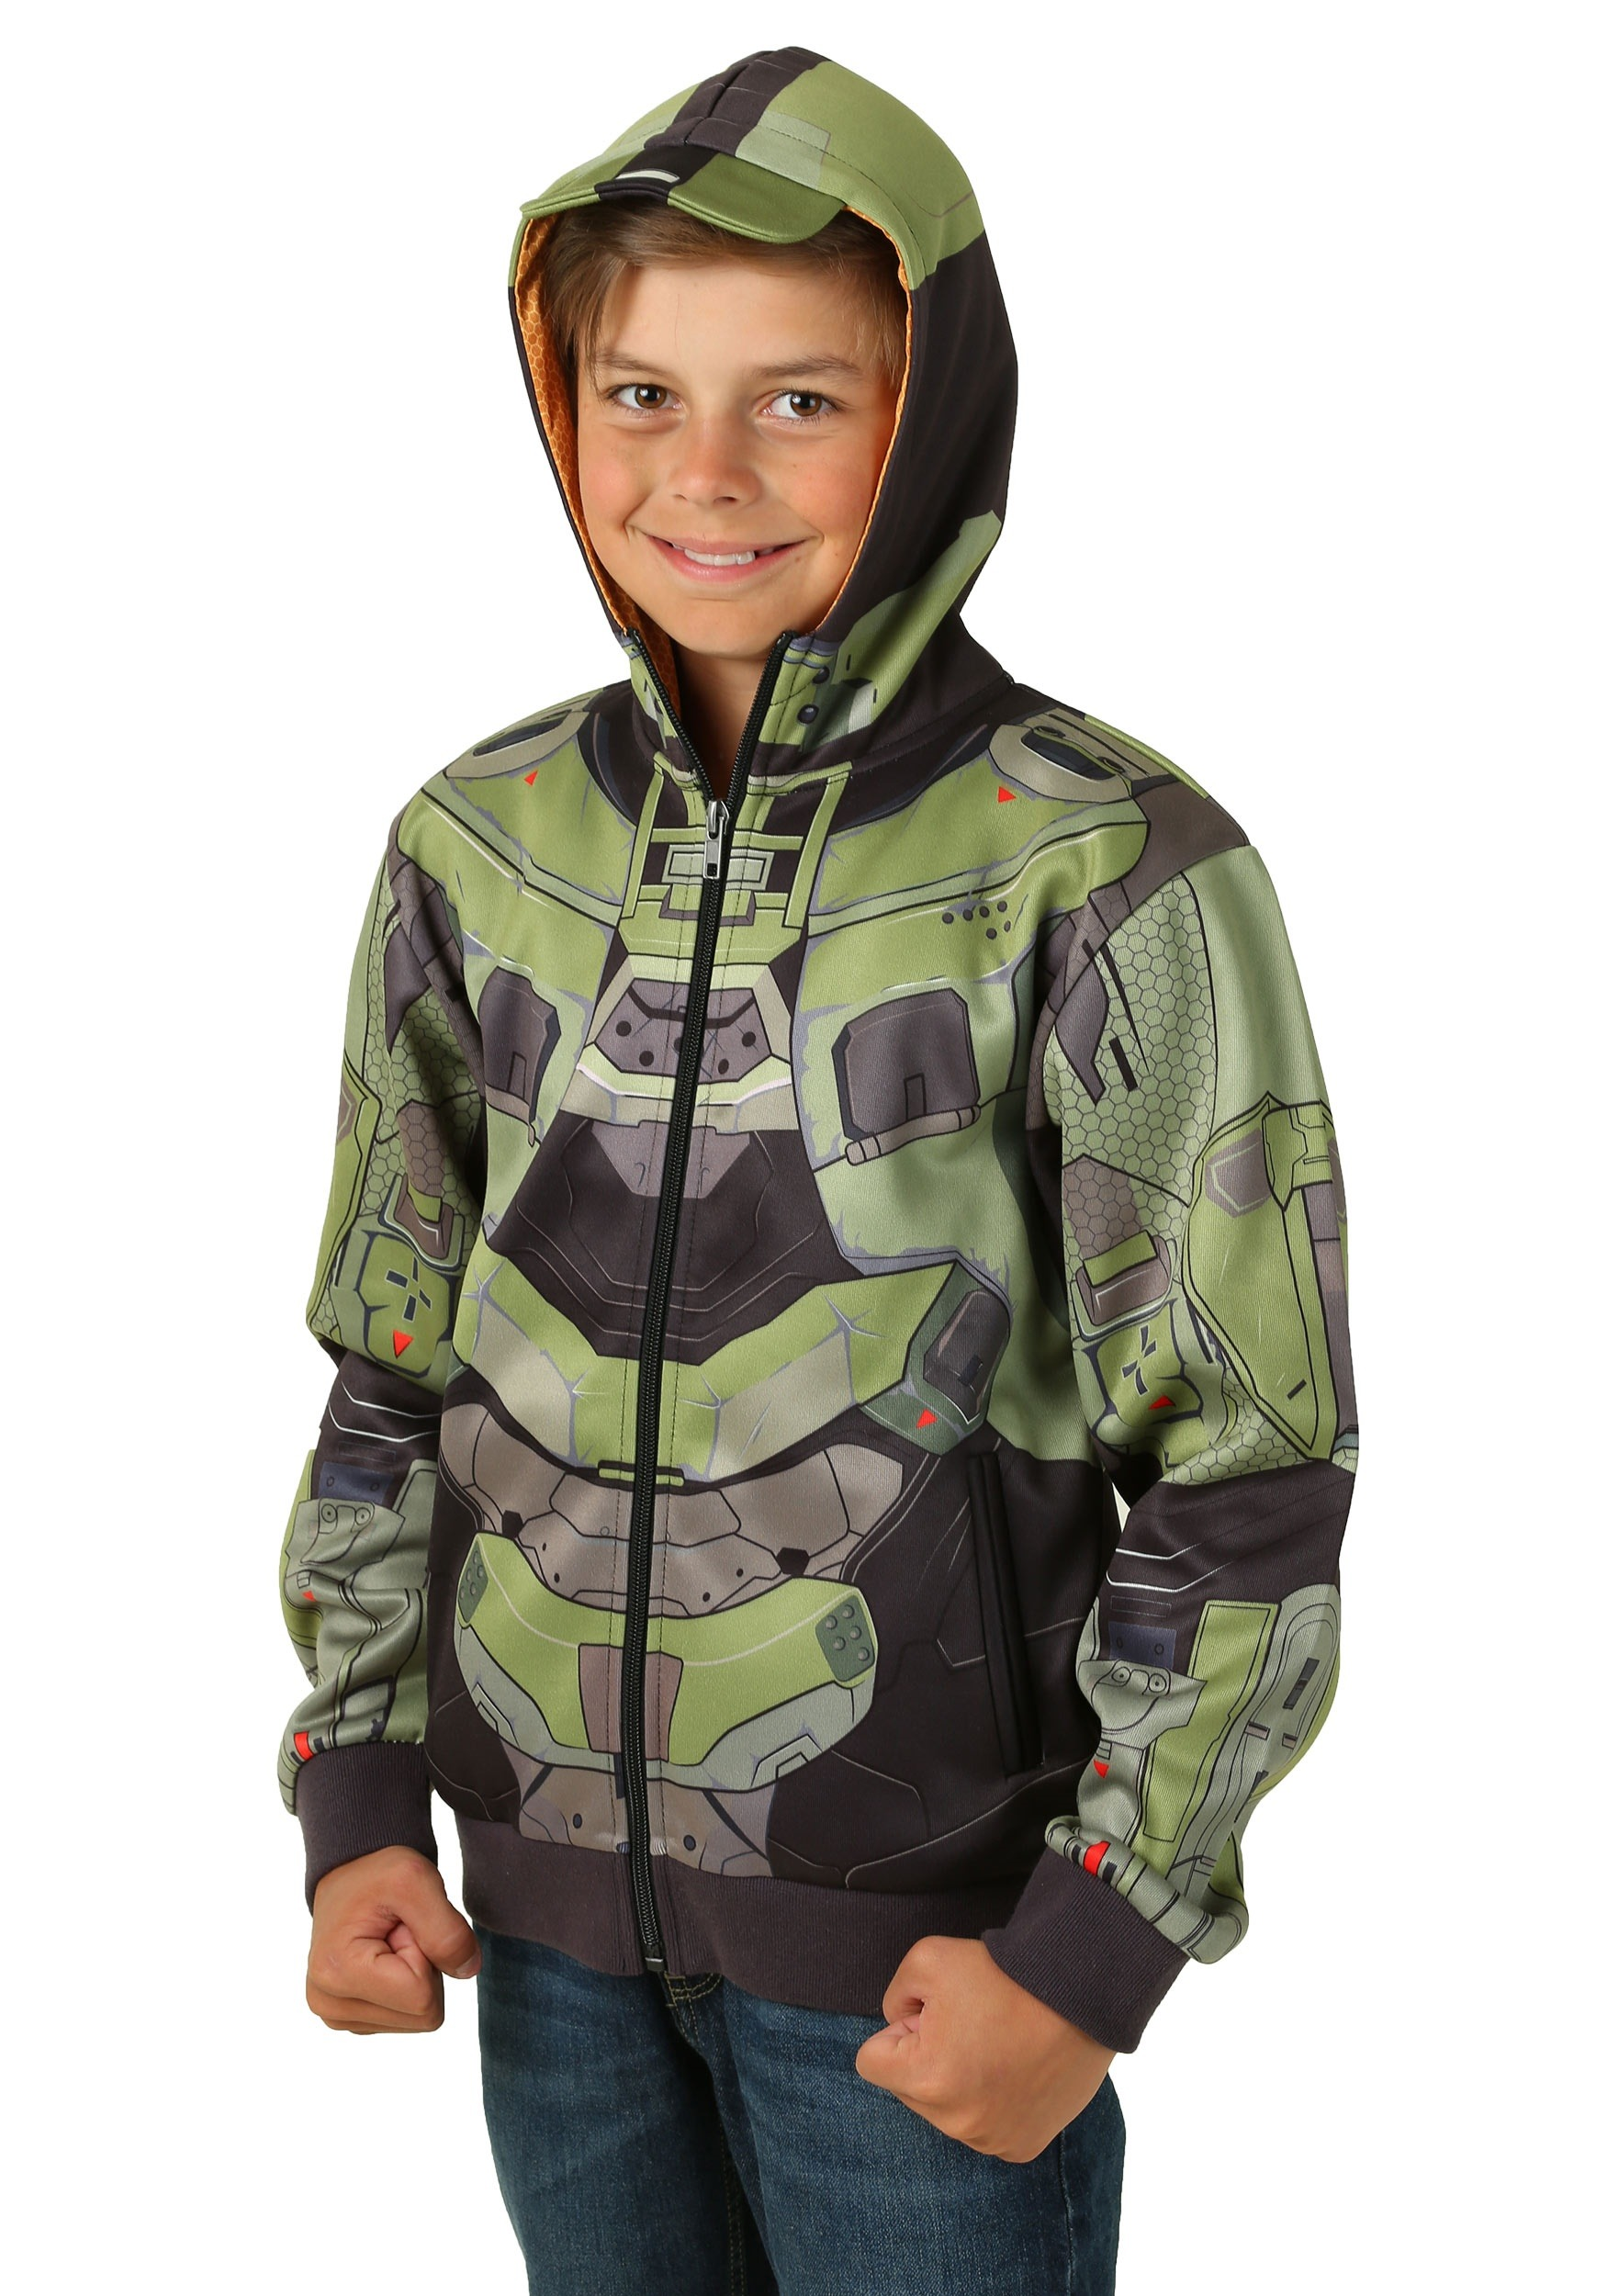 Child Halo Master Chief Costume Hoodie  sc 1 st  Halloween Costumes & Halo Master Chief Costumes - HalloweenCostumes.com